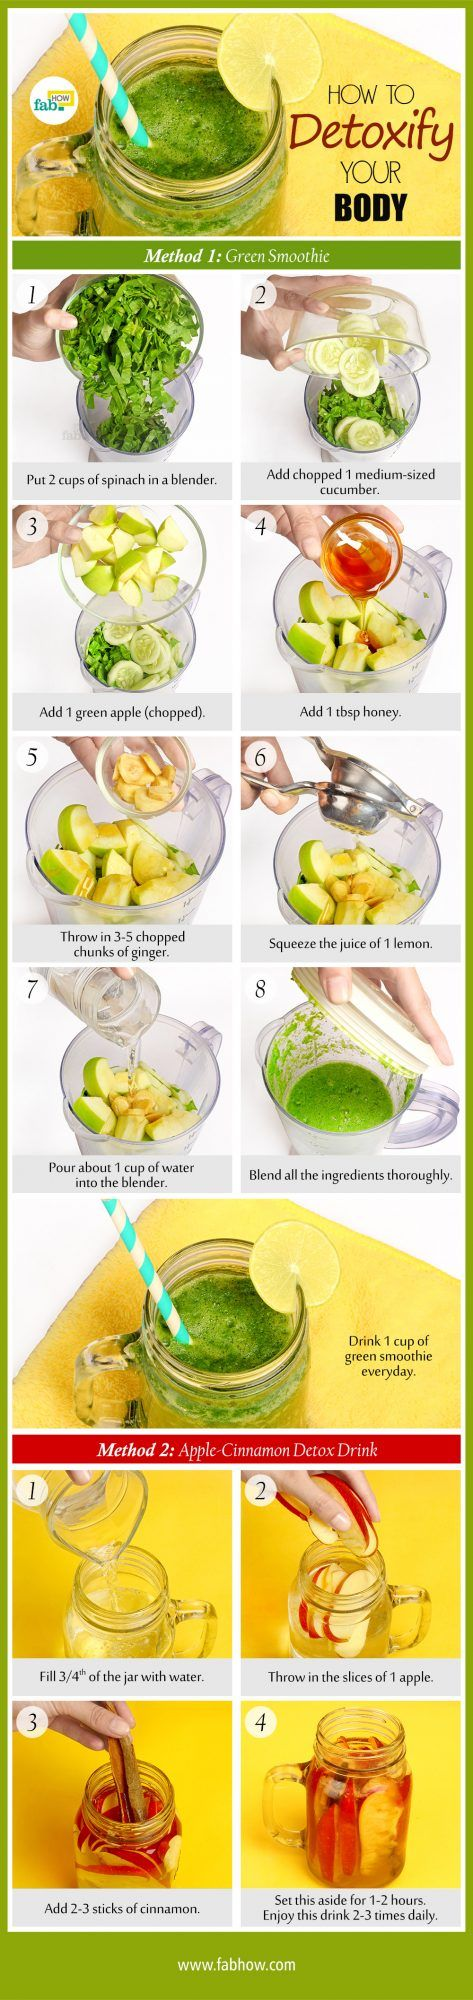 Top 3 Ways to Detox Your Body Naturally